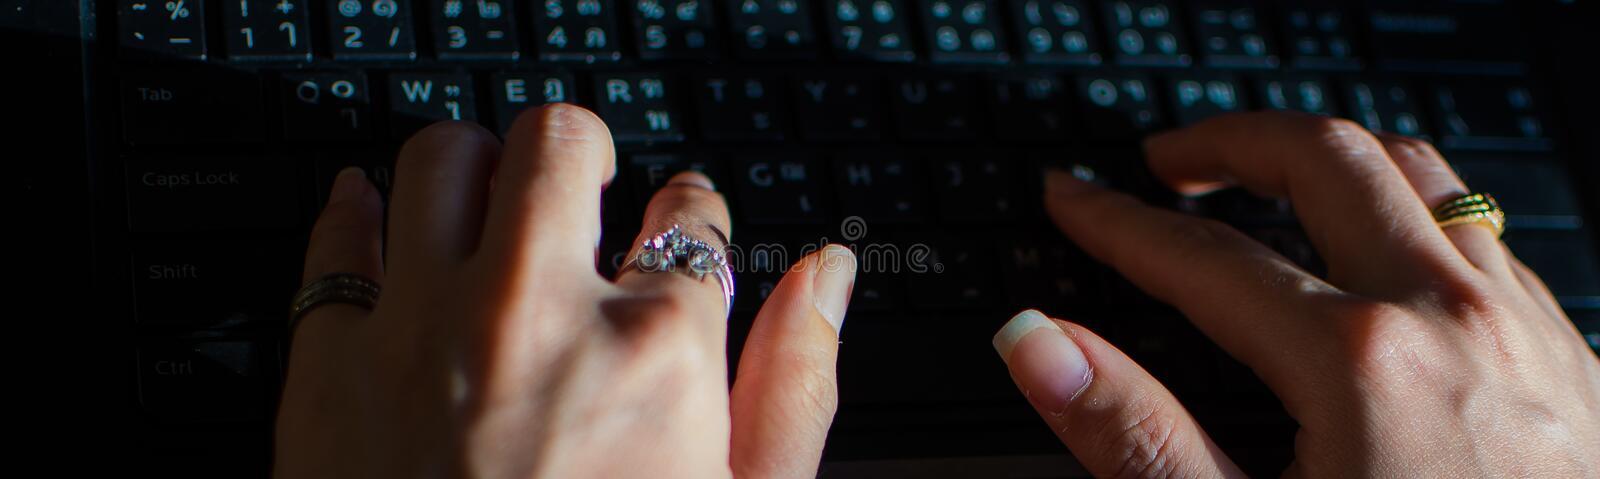 Typing a message on the black keyboard stock photo